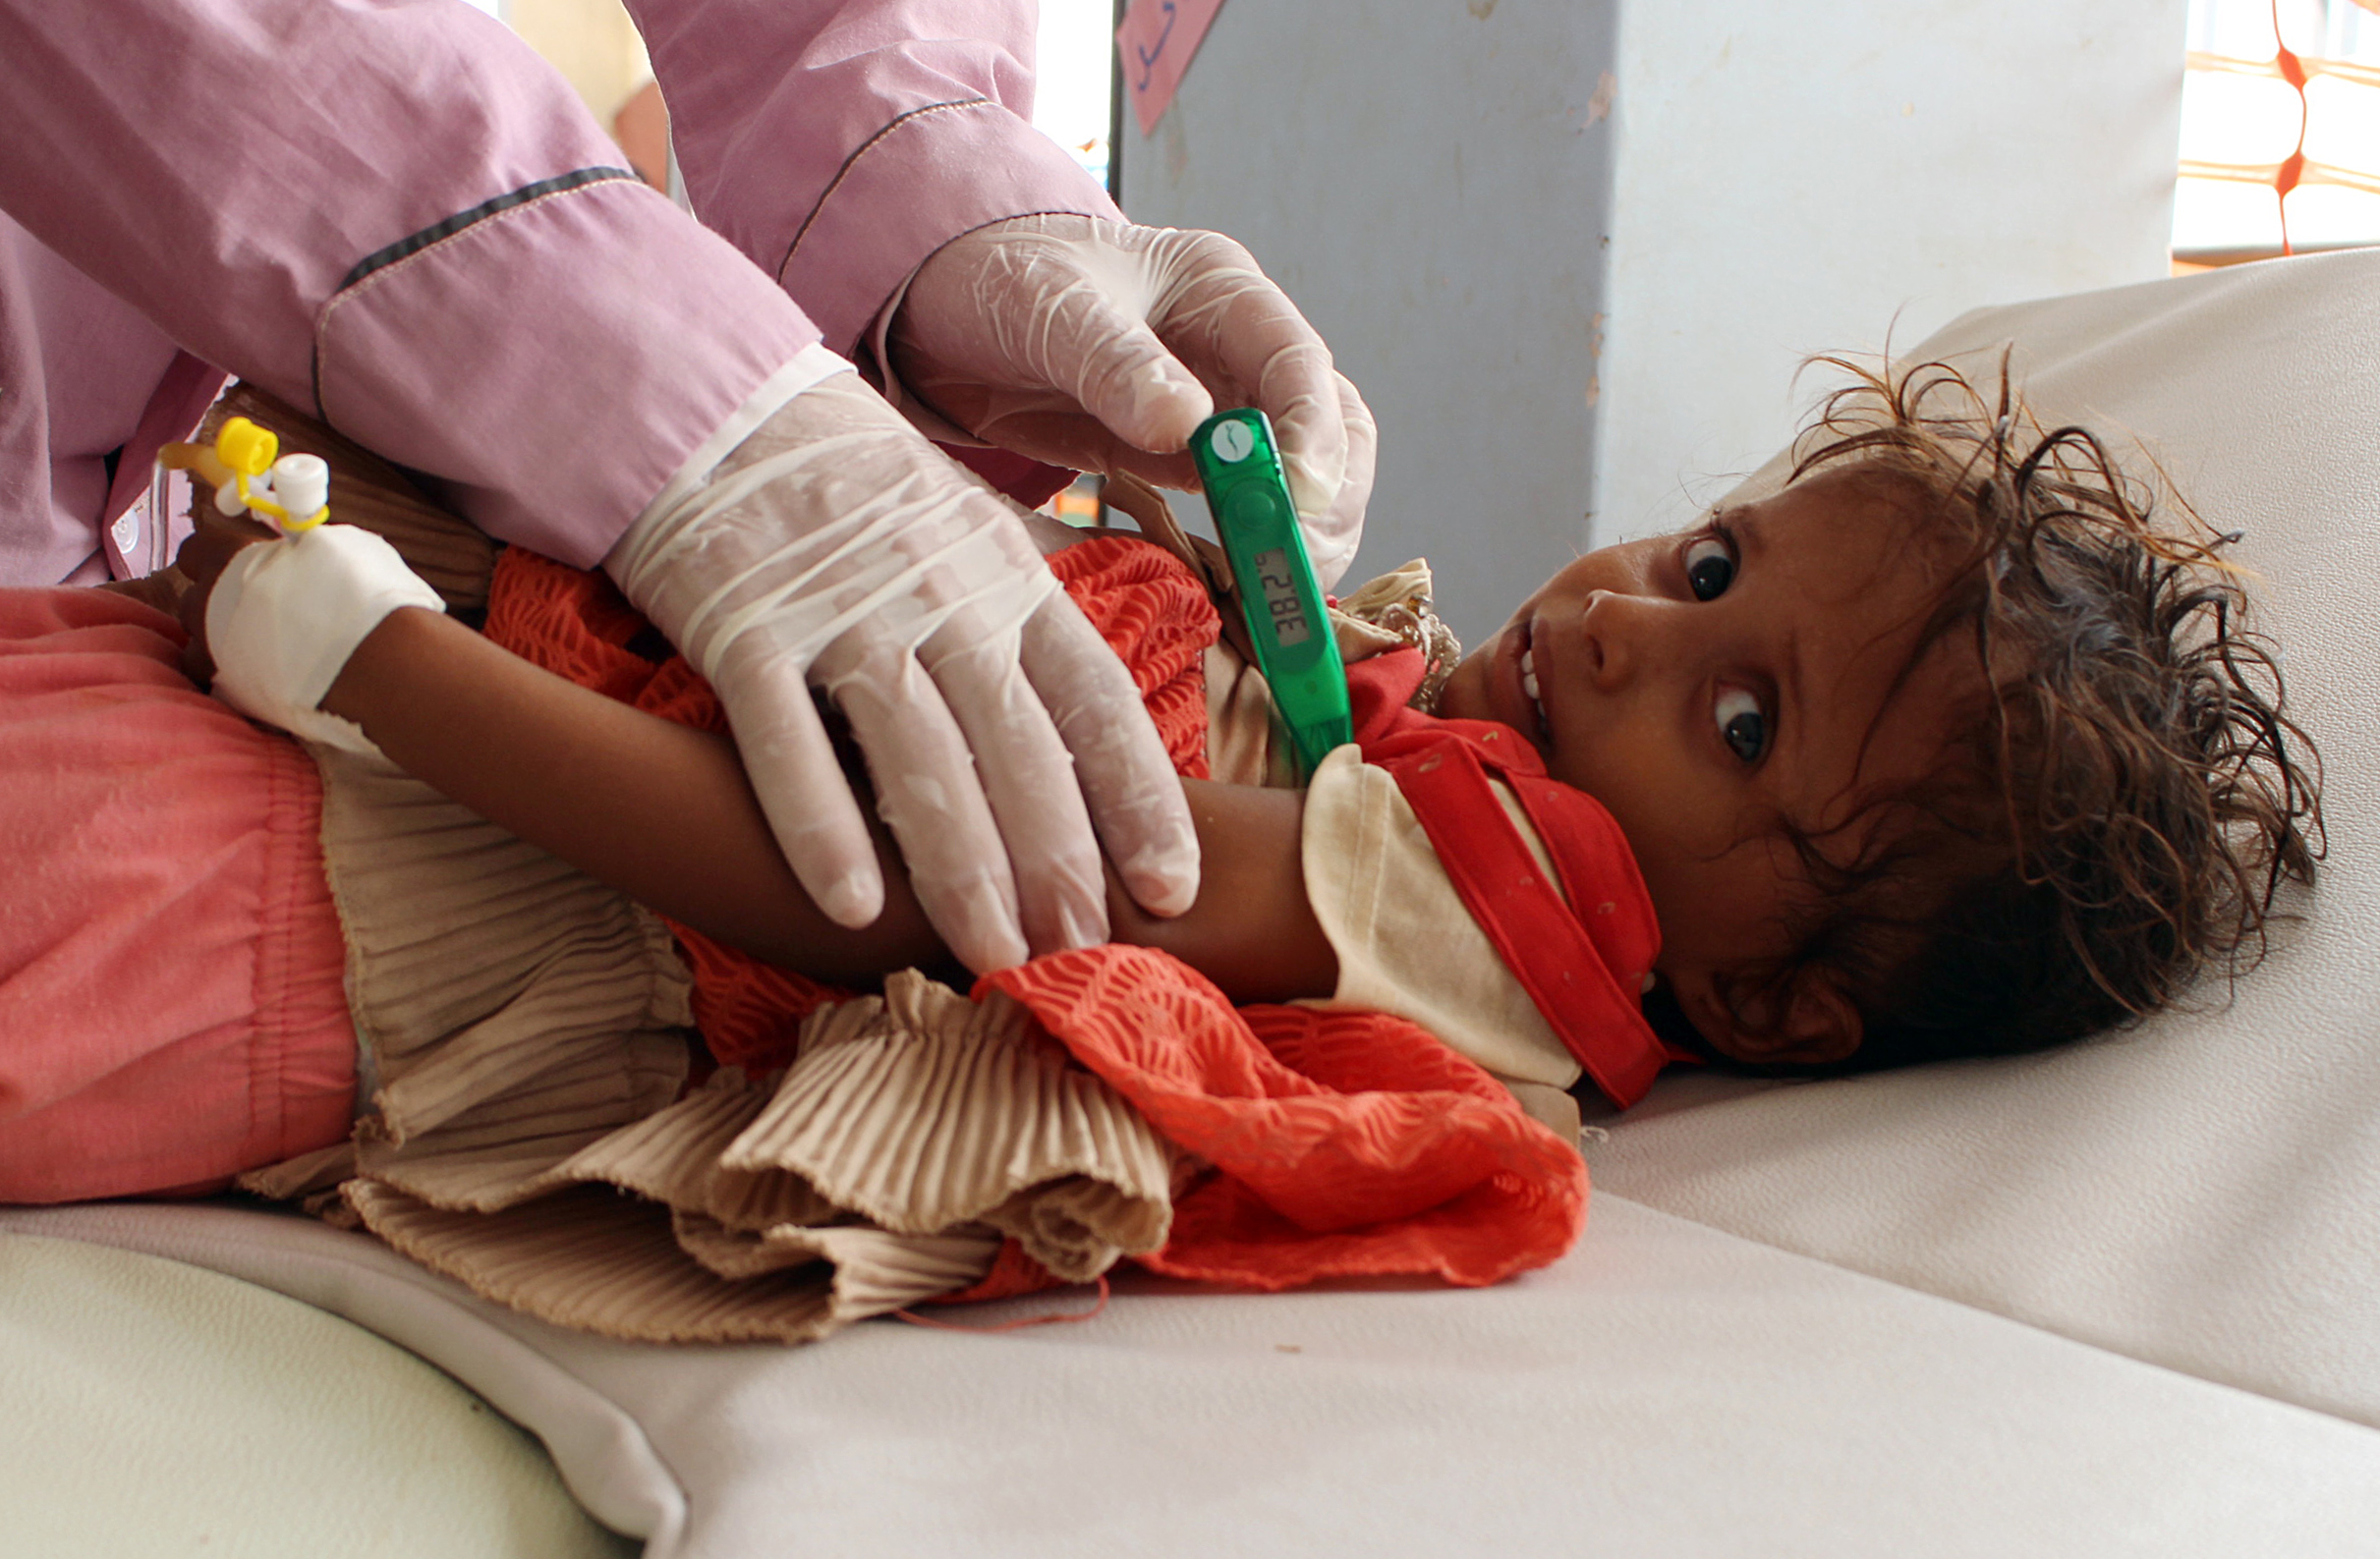 A Yemeni child suspected of being infected with cholera is checked by a doctor at a makeshift hospital operated by Doctors Without Borders in Yemen's Hajjah province on July 16, 2017.